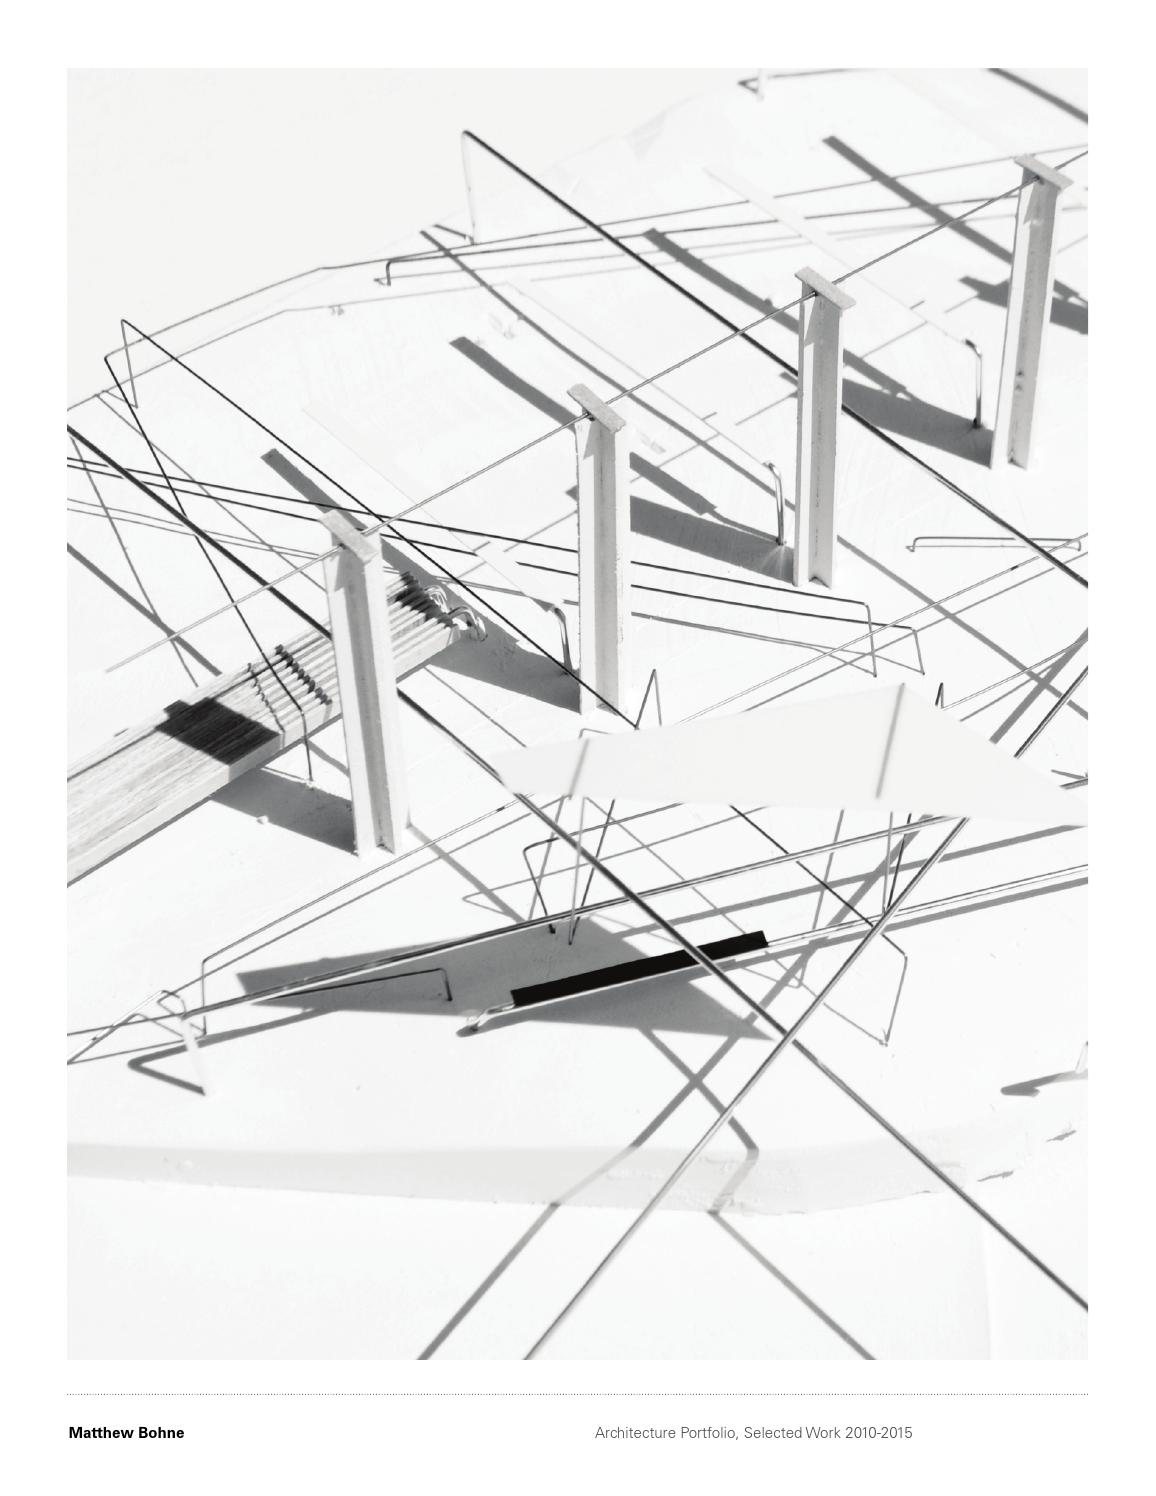 1156x1496 Matthew Bohne Architecture Portfolio, Selected Work 2010 2015 By